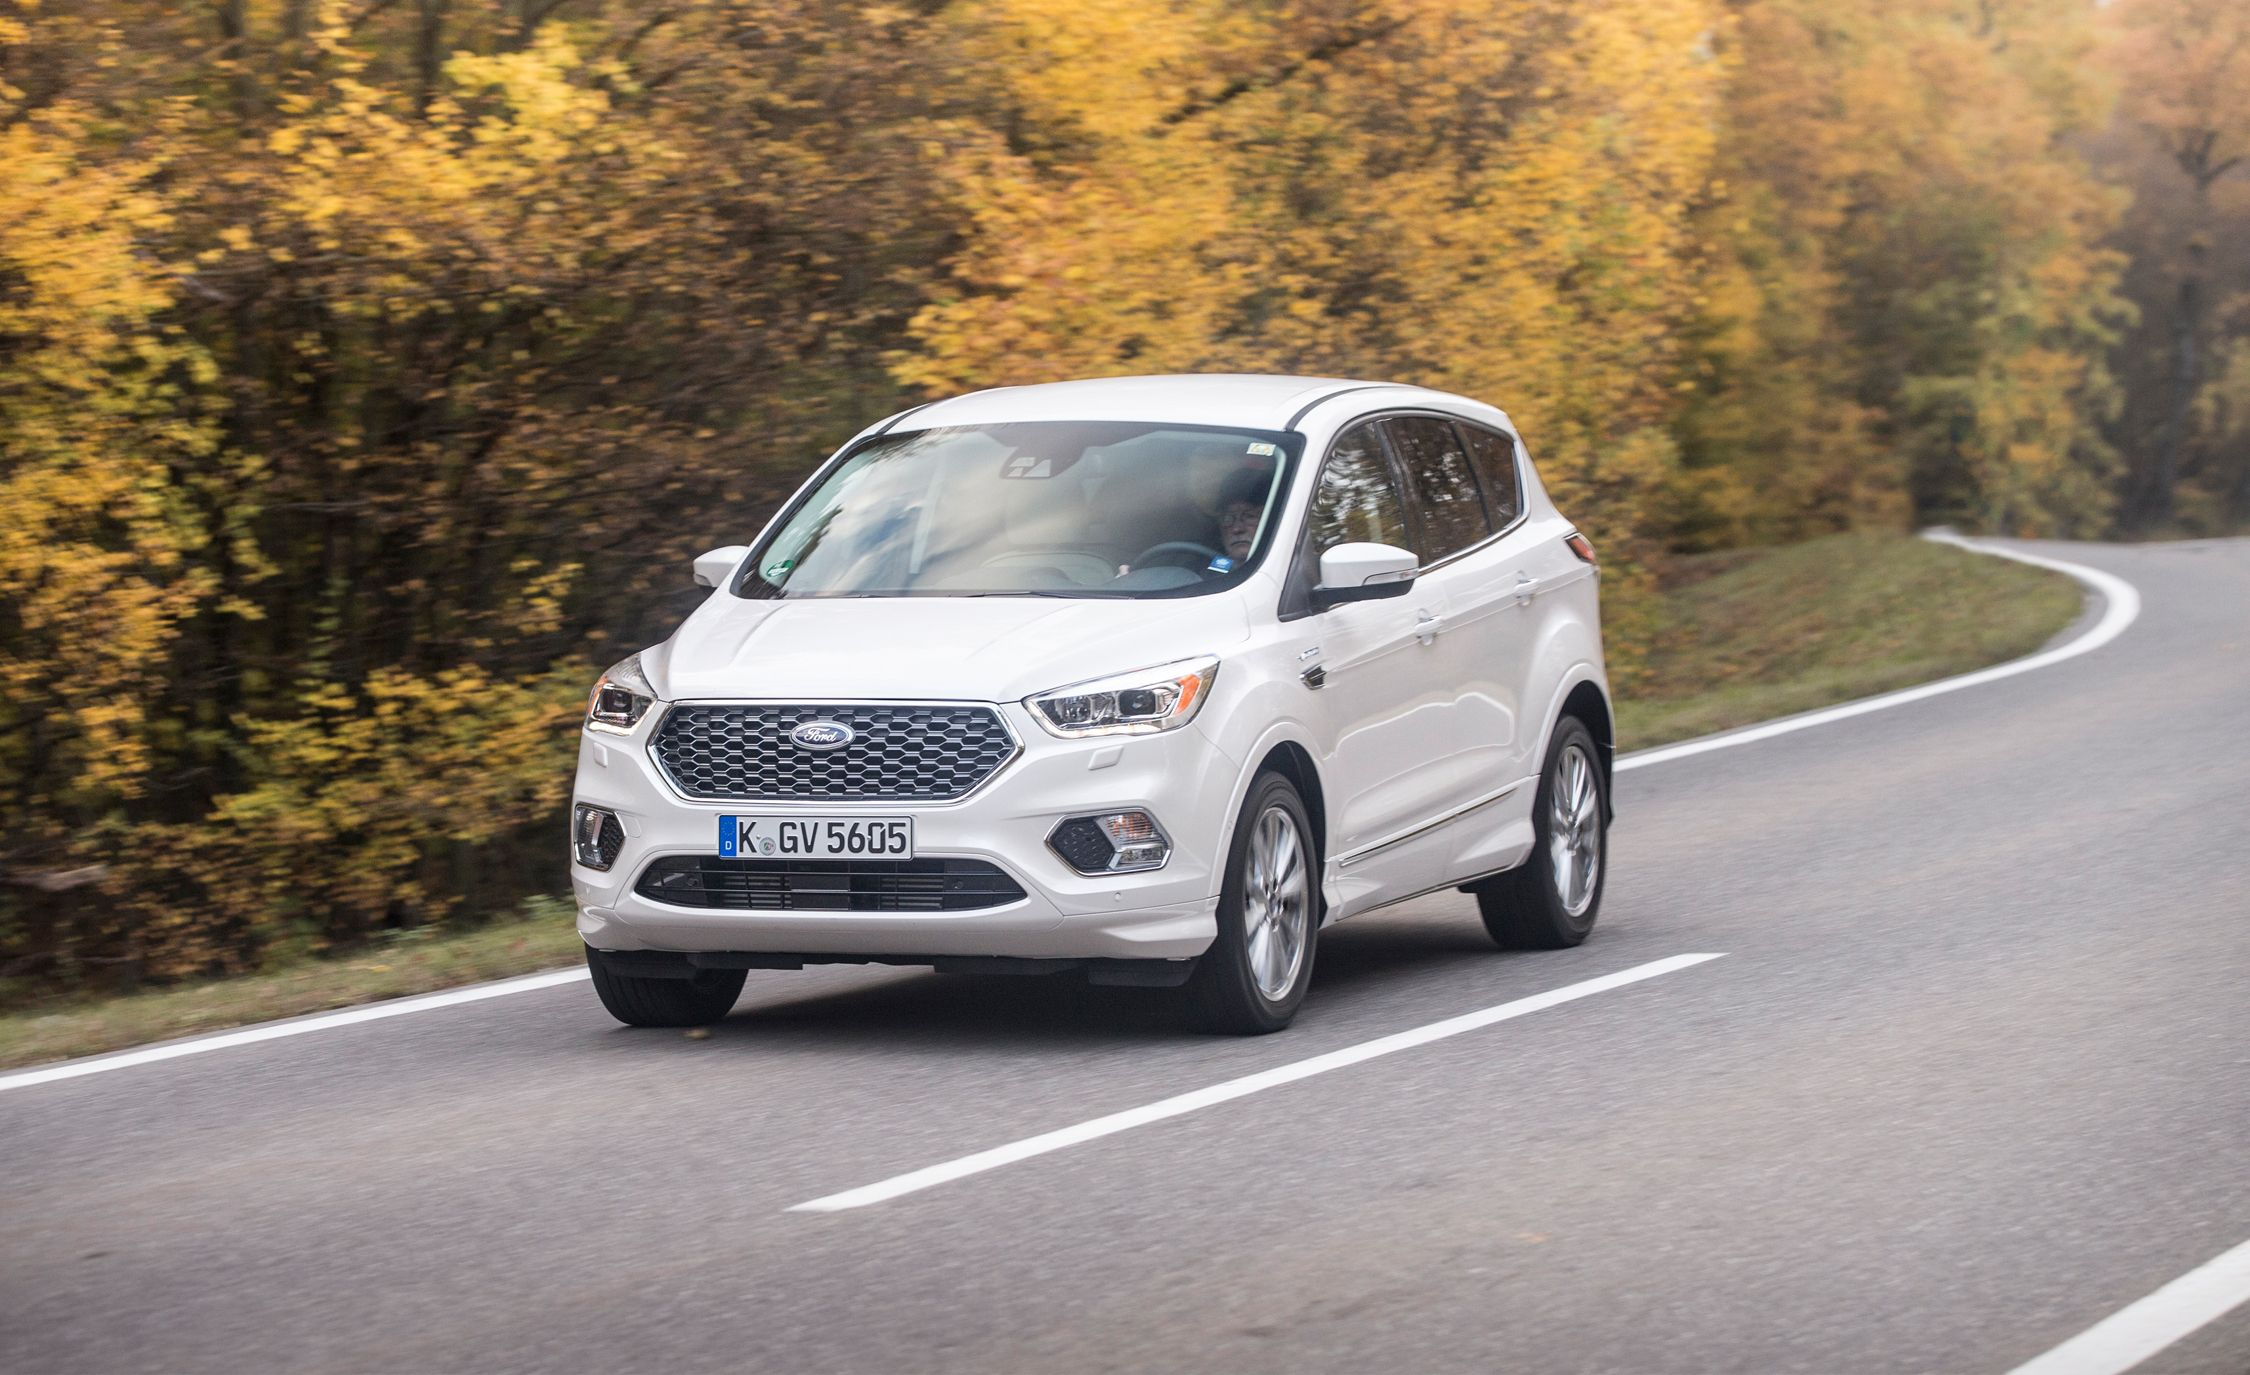 The Fanciest Ford Escape Ever: We Drive the European Kuga Vignale